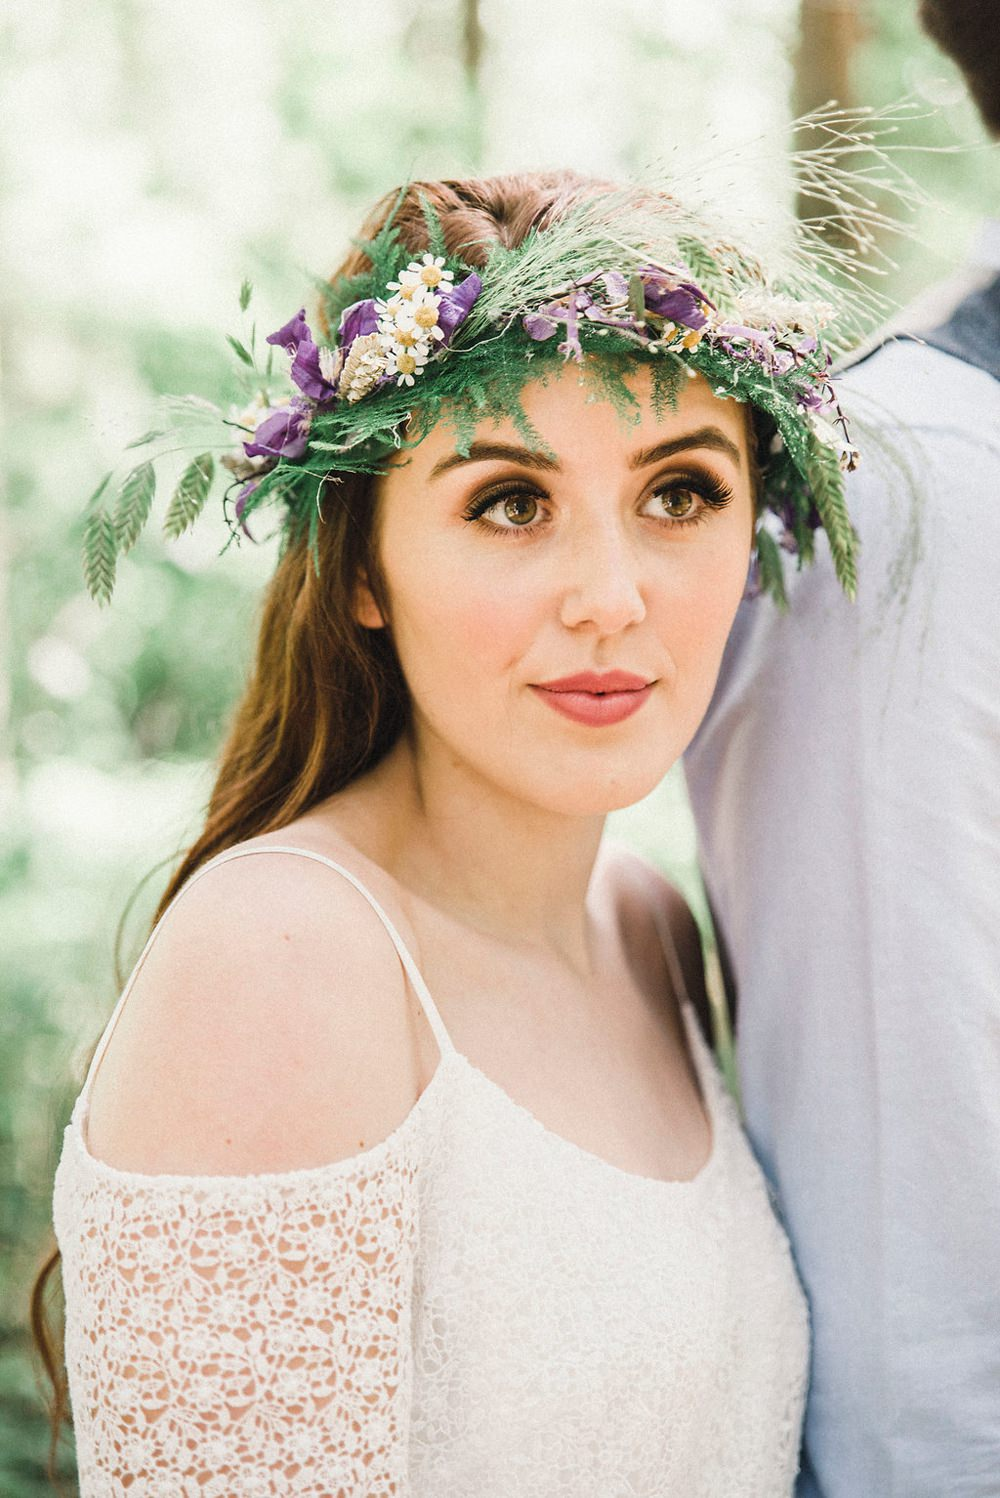 Bride Bridal Make Up Beauty Boho Woodland Wedding Ideas Camp Katur Emily Olivia Photography